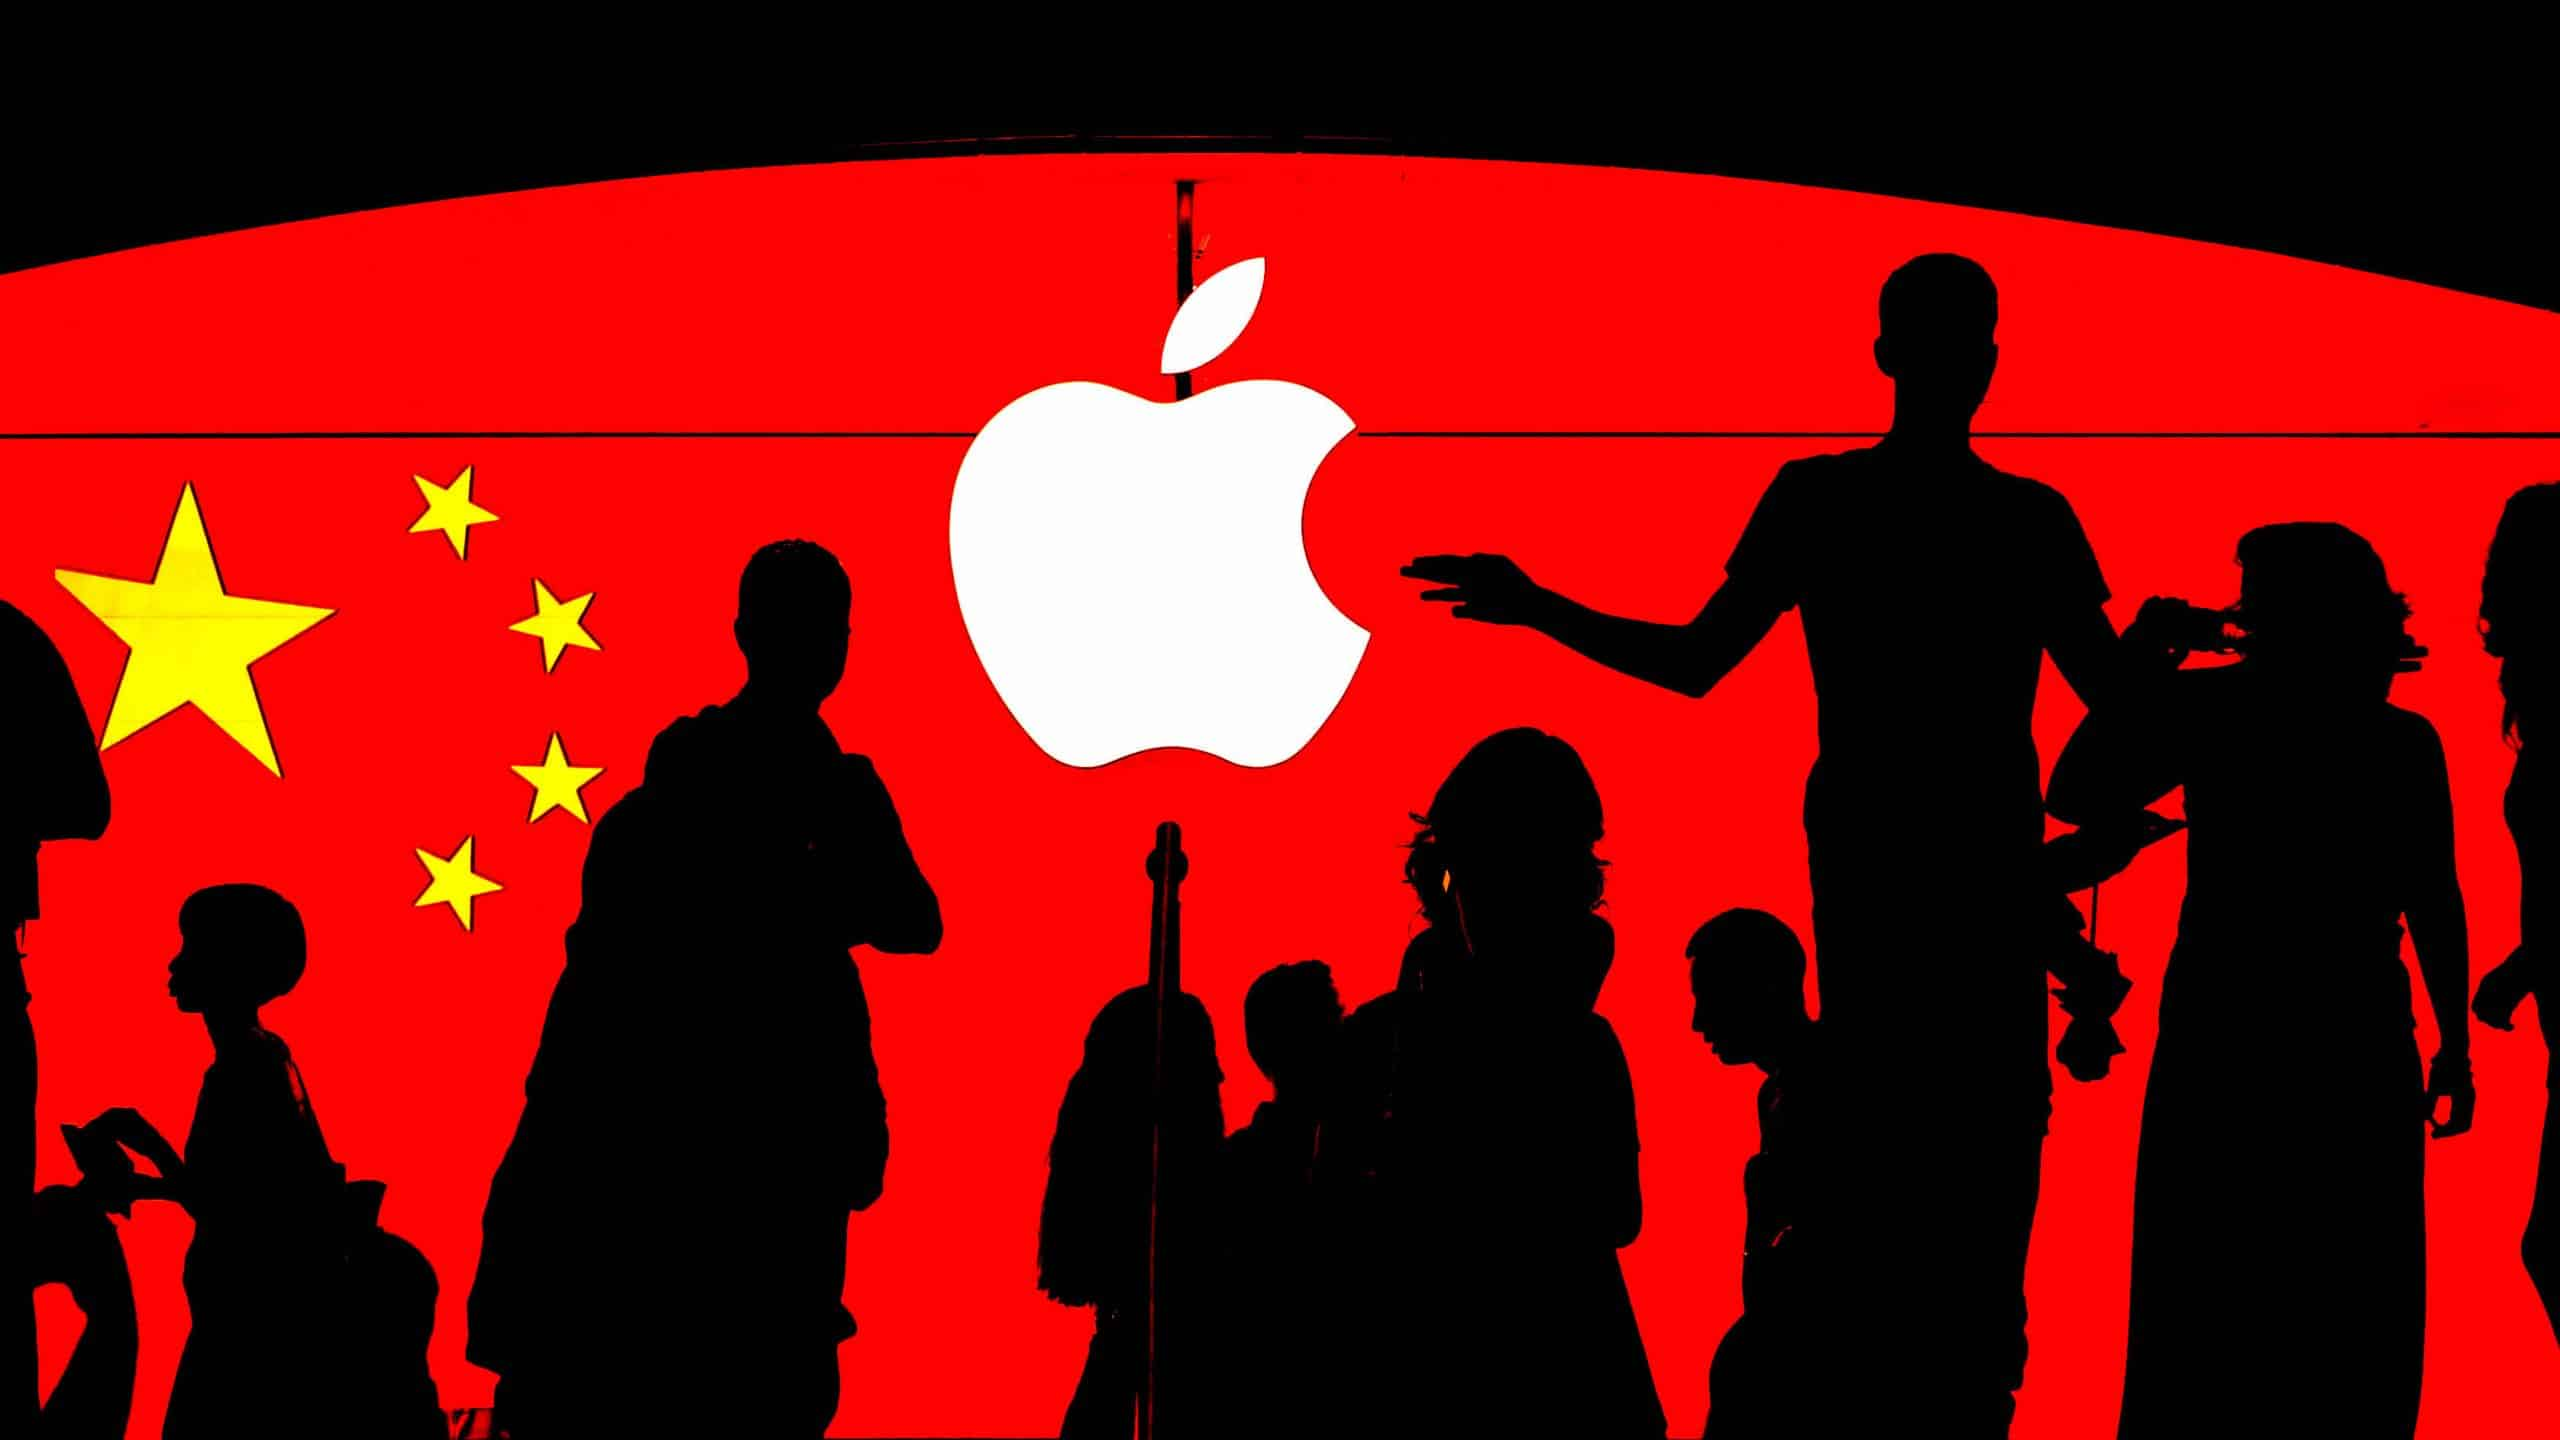 Apple was warned about doing business in China